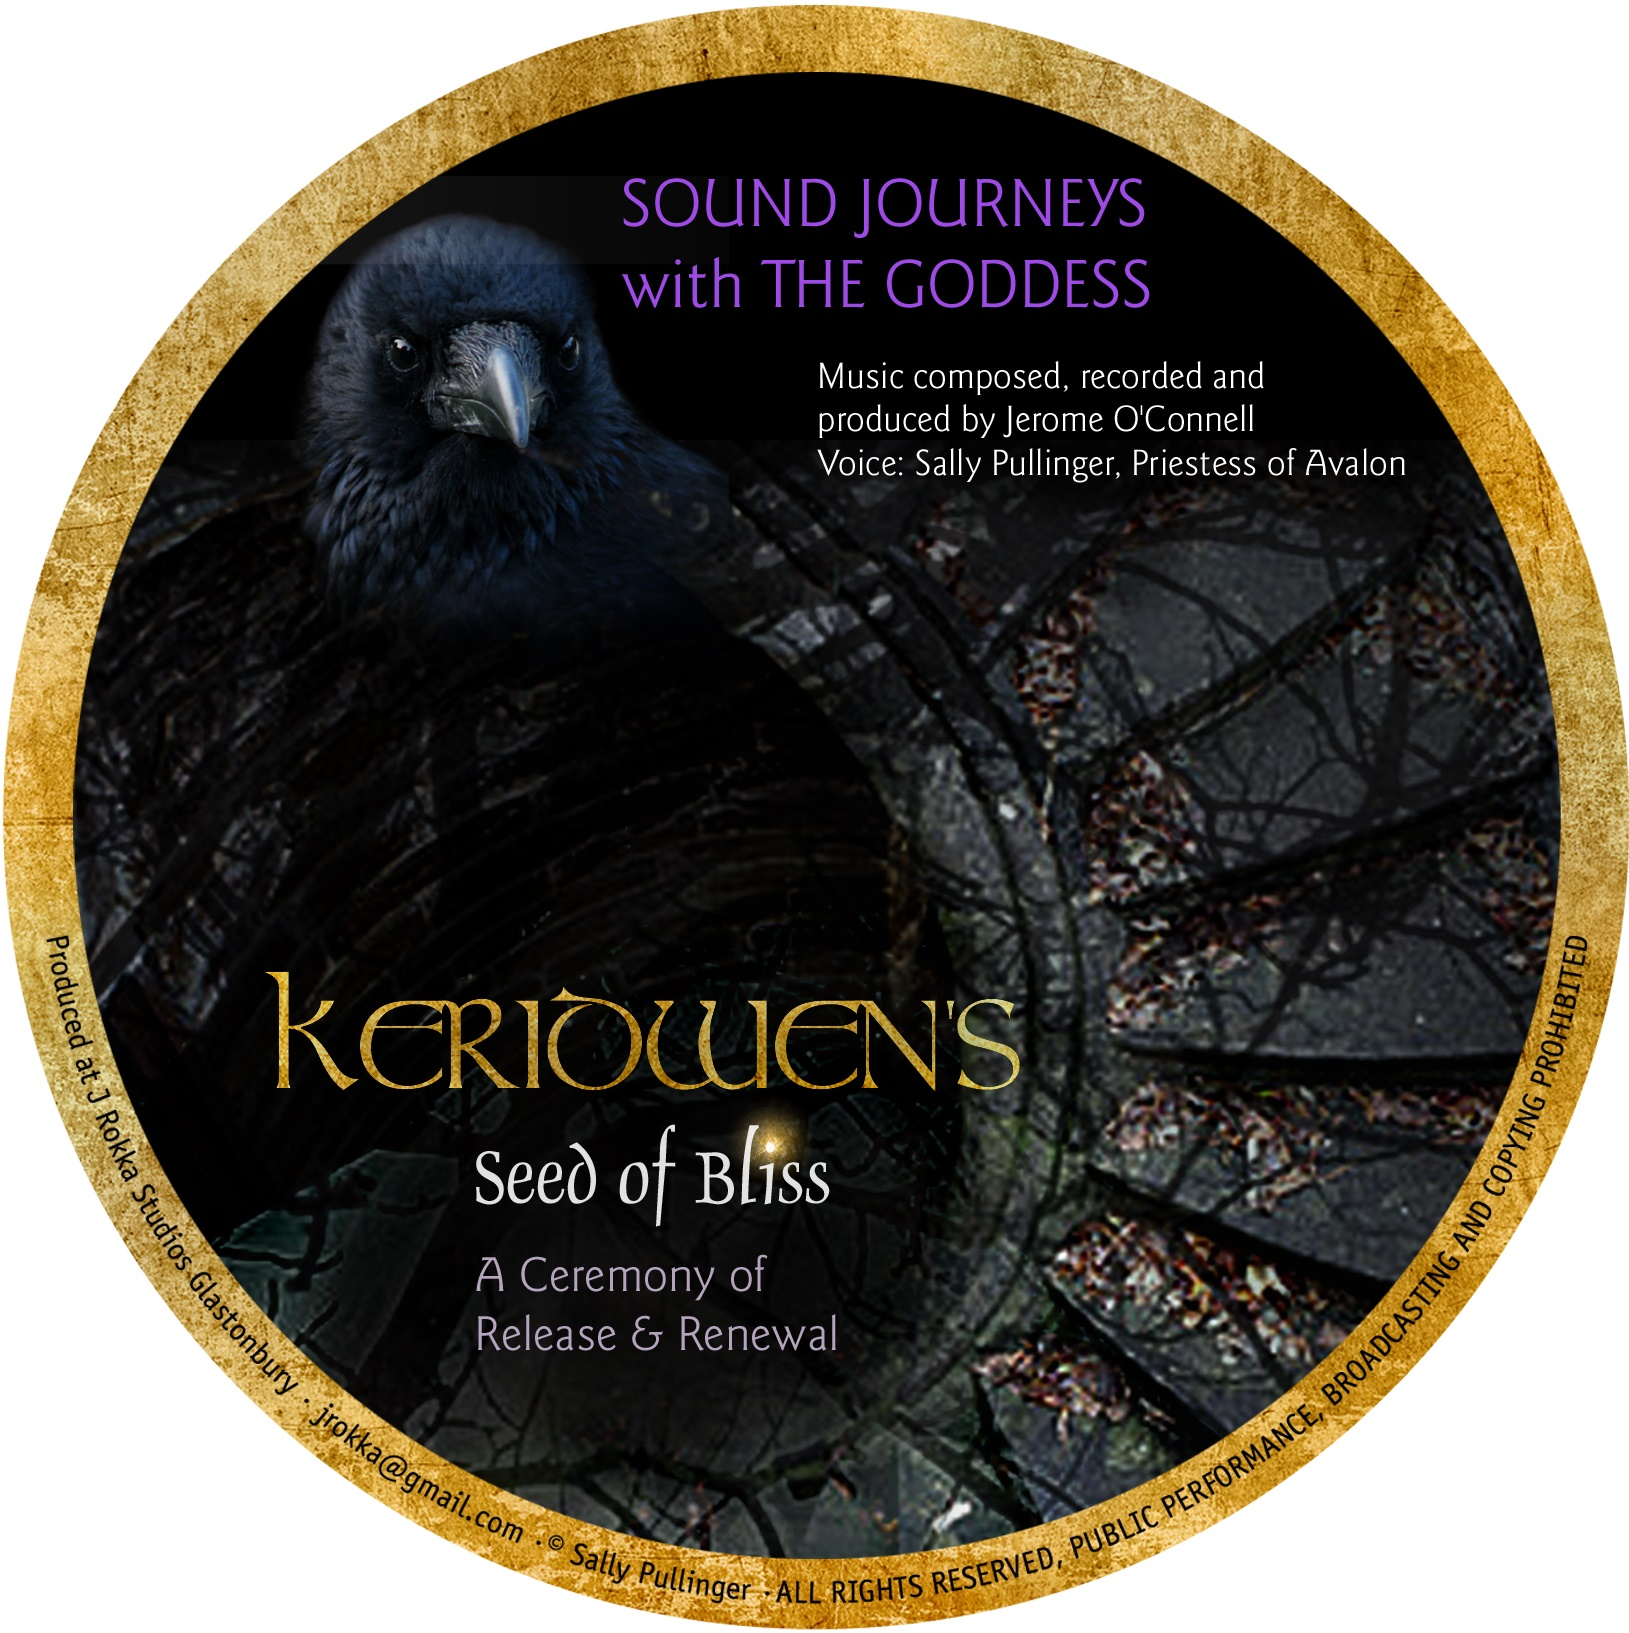 Keridwen's seed of bliss cd by sally pullinger